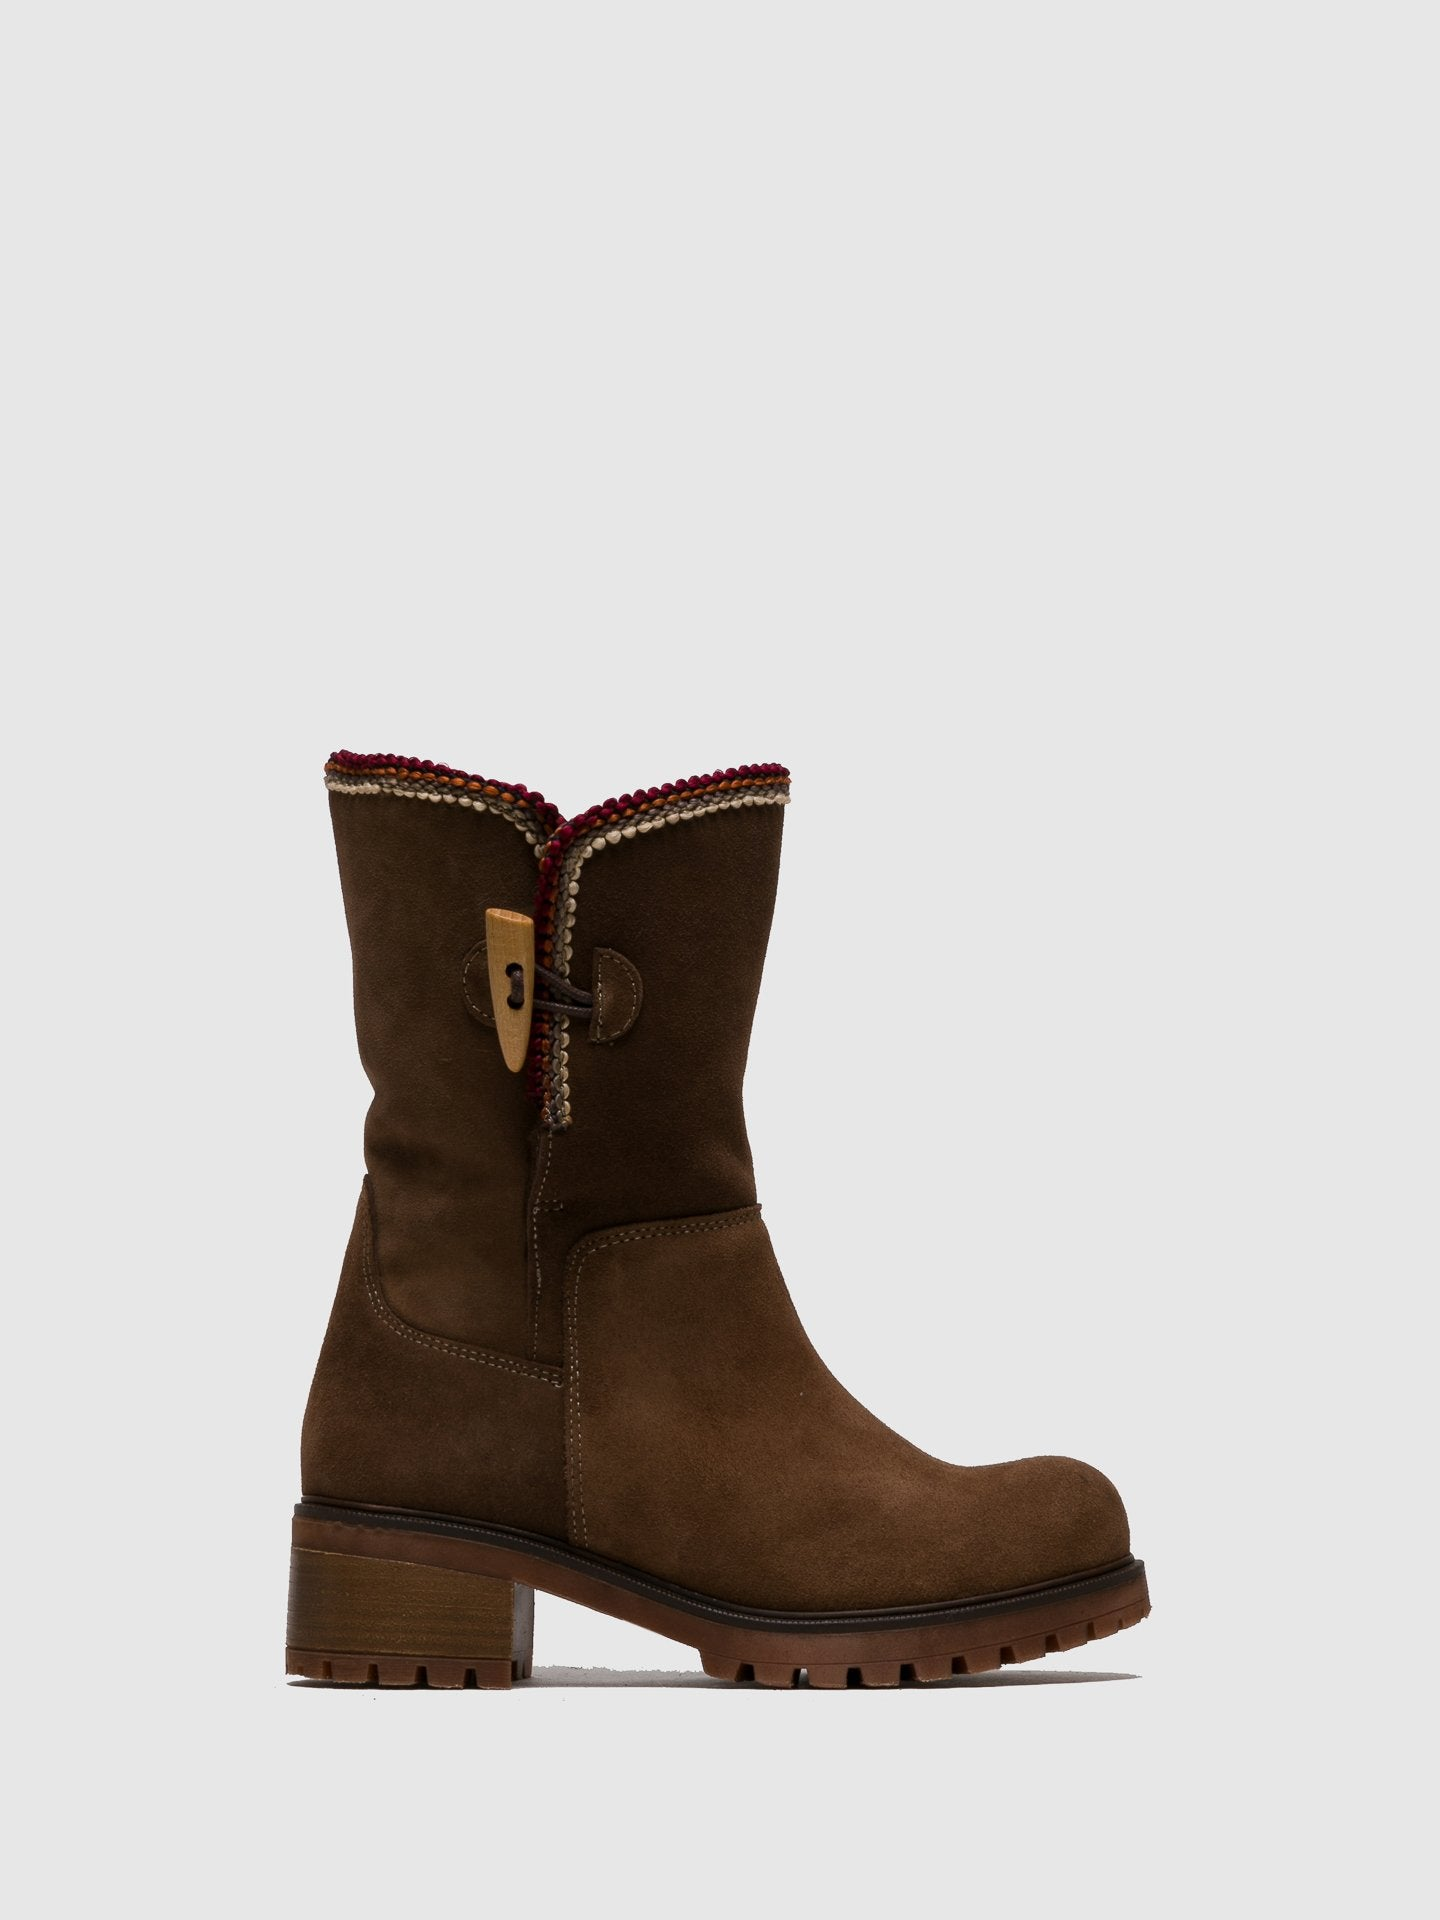 Sotoalto Brown Suede Round Toe Boots